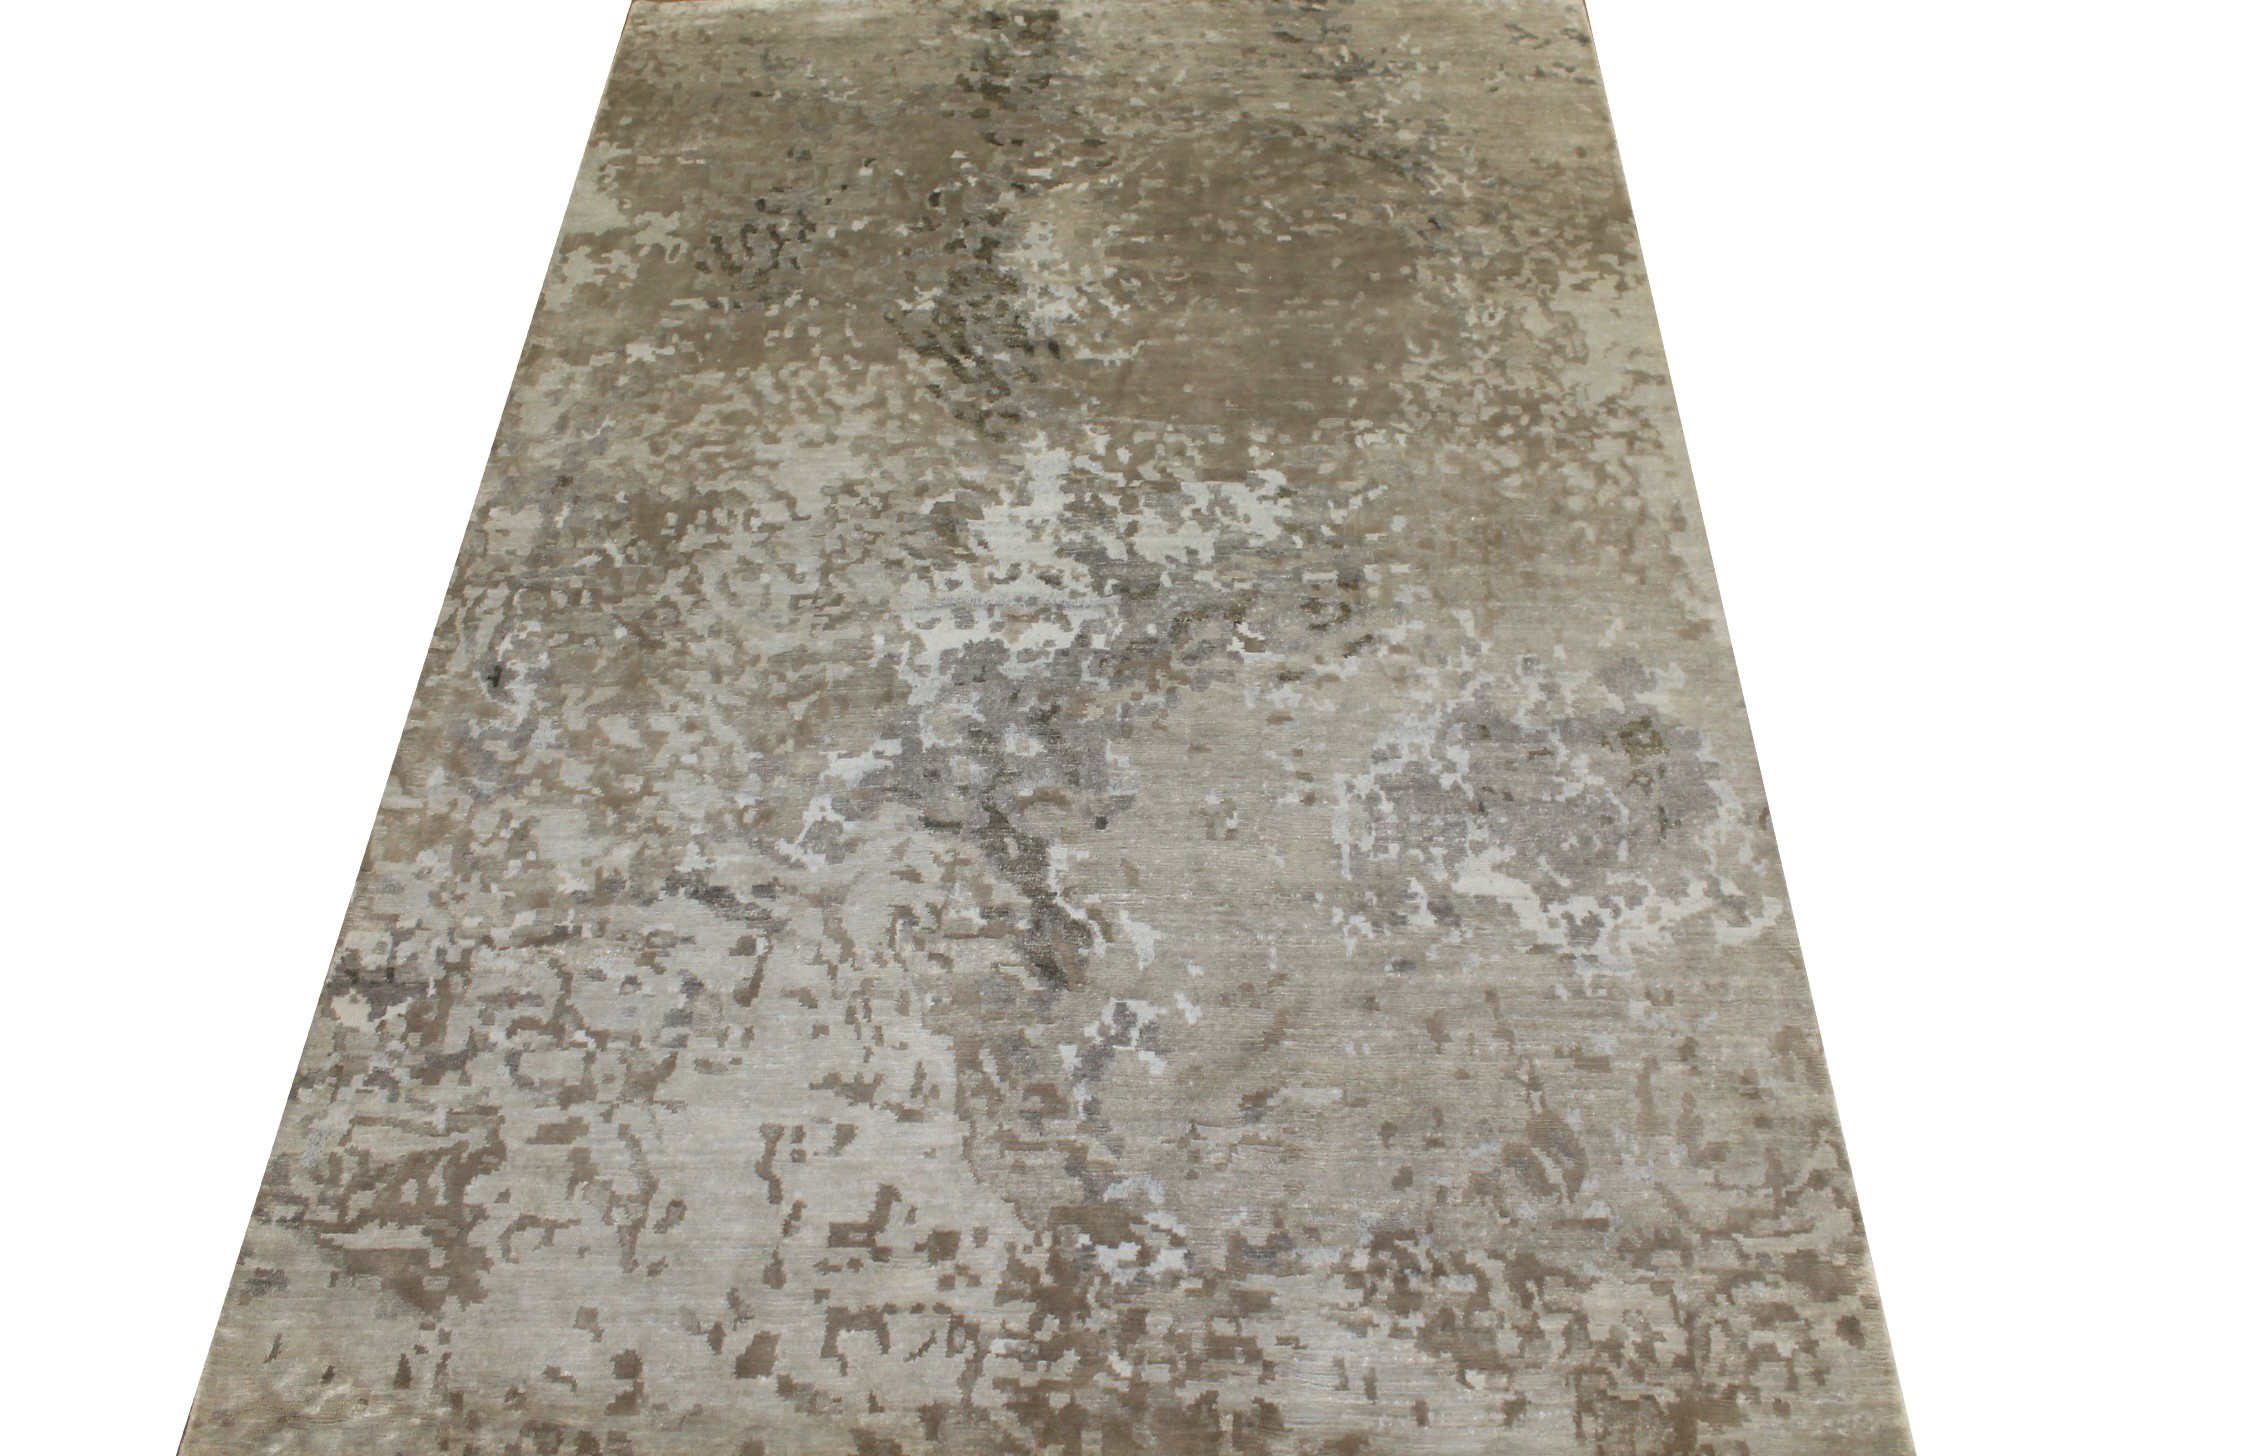 6x9 Modern Hand Knotted Wool Area Rug - MR024312